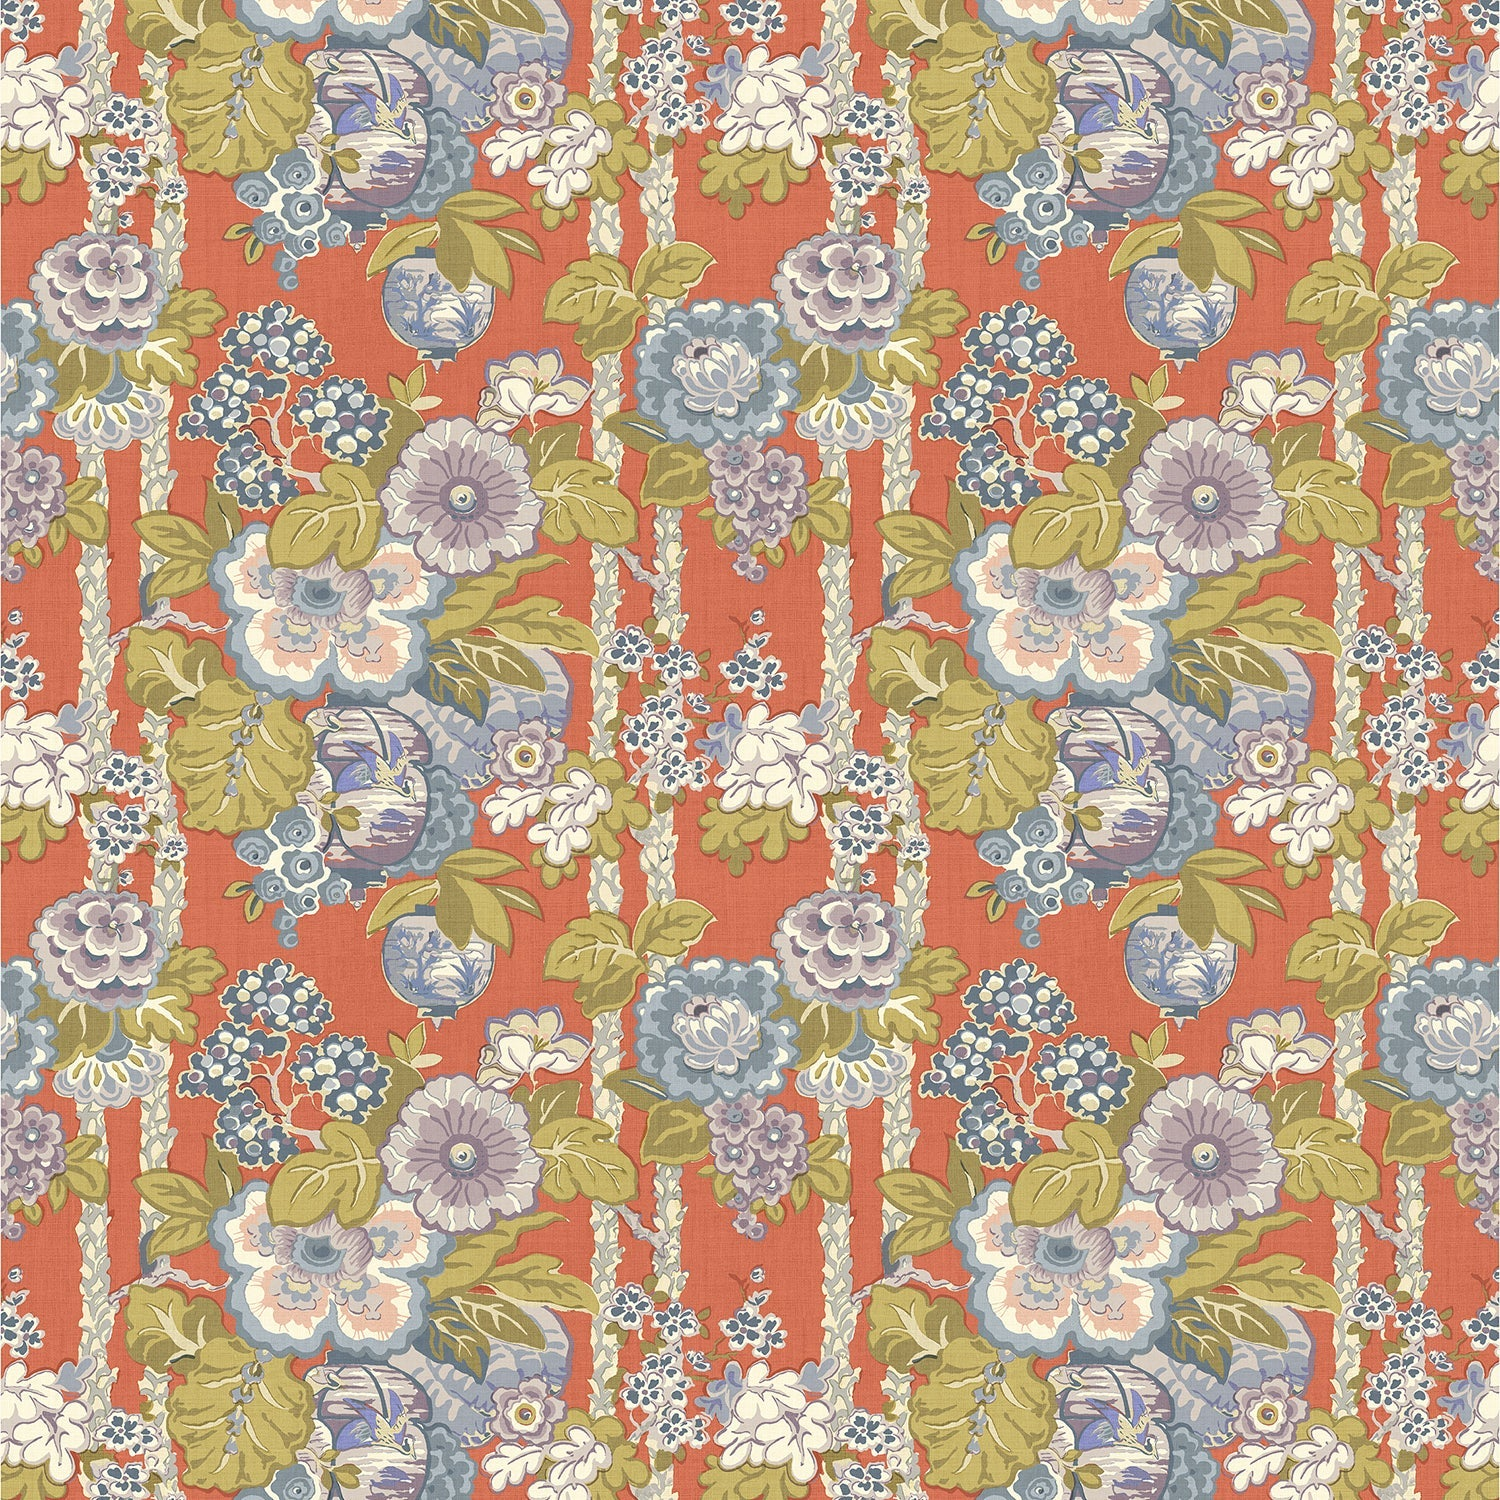 Fabric swatch of a lively, large scale floral fabric for curtains and upholstery with orange and lilac tones